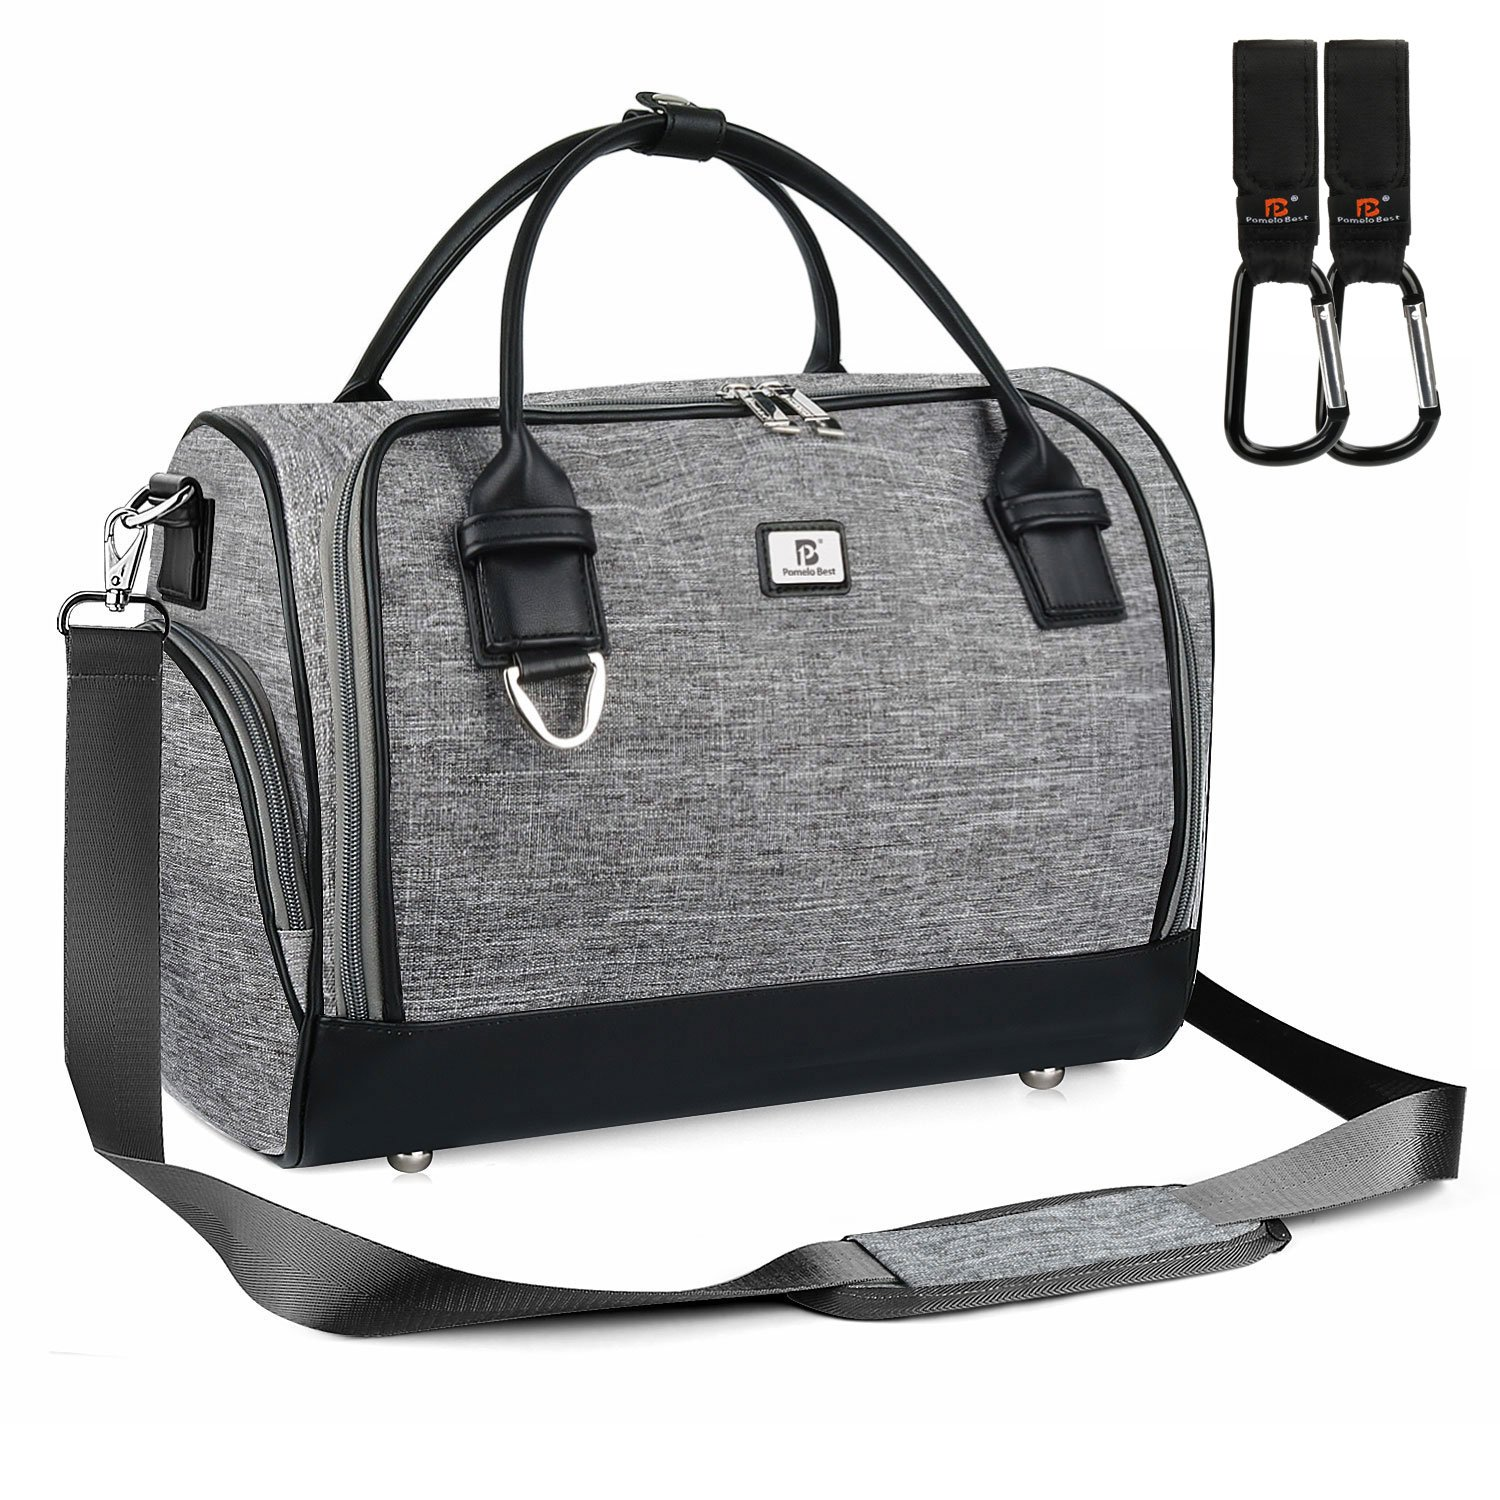 Diaper Changing Messenger Bag, Nappy Changing Bag with Stroller Hook and Changing Pad (Linen Color) Pomelo Best 1800184